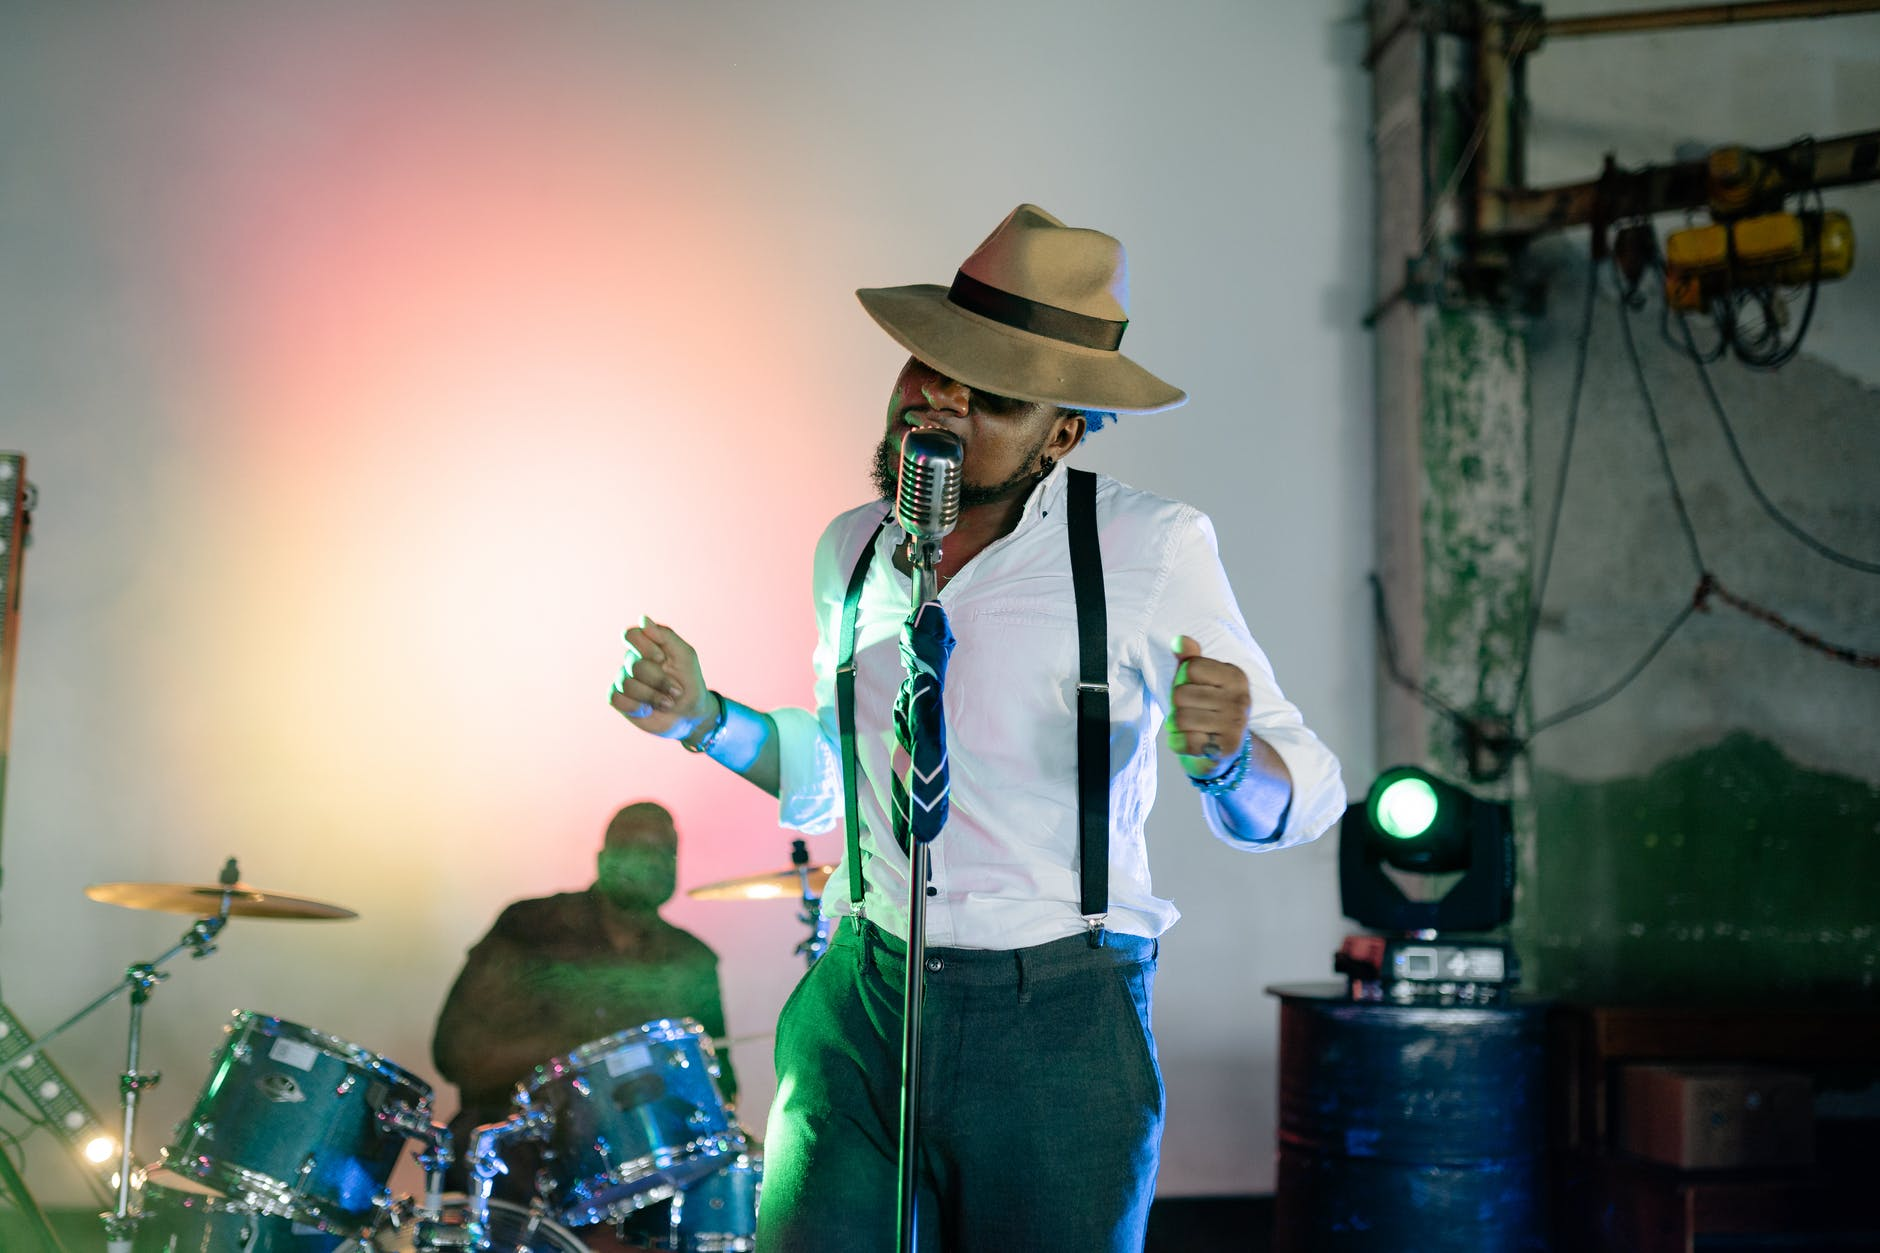 man in white shirt and hat standing and singing